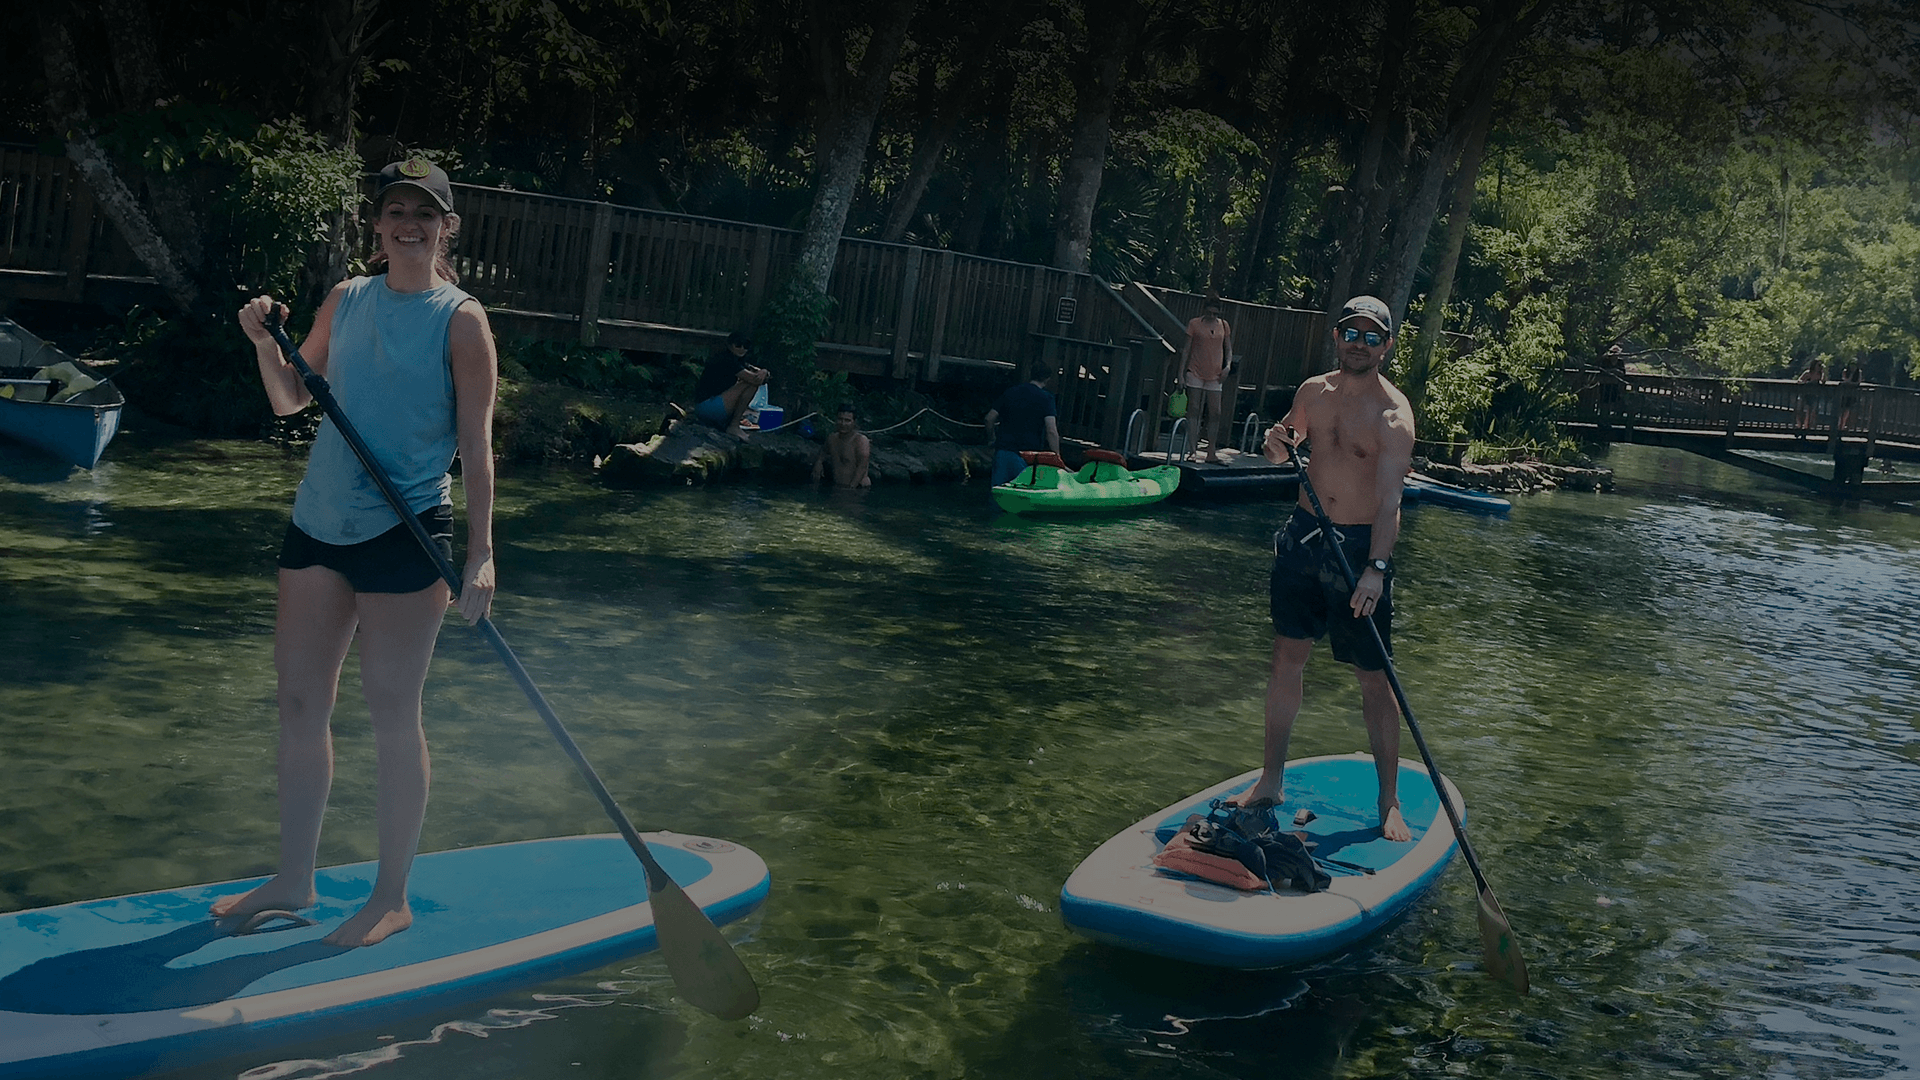 Wekiva SUP Adventures